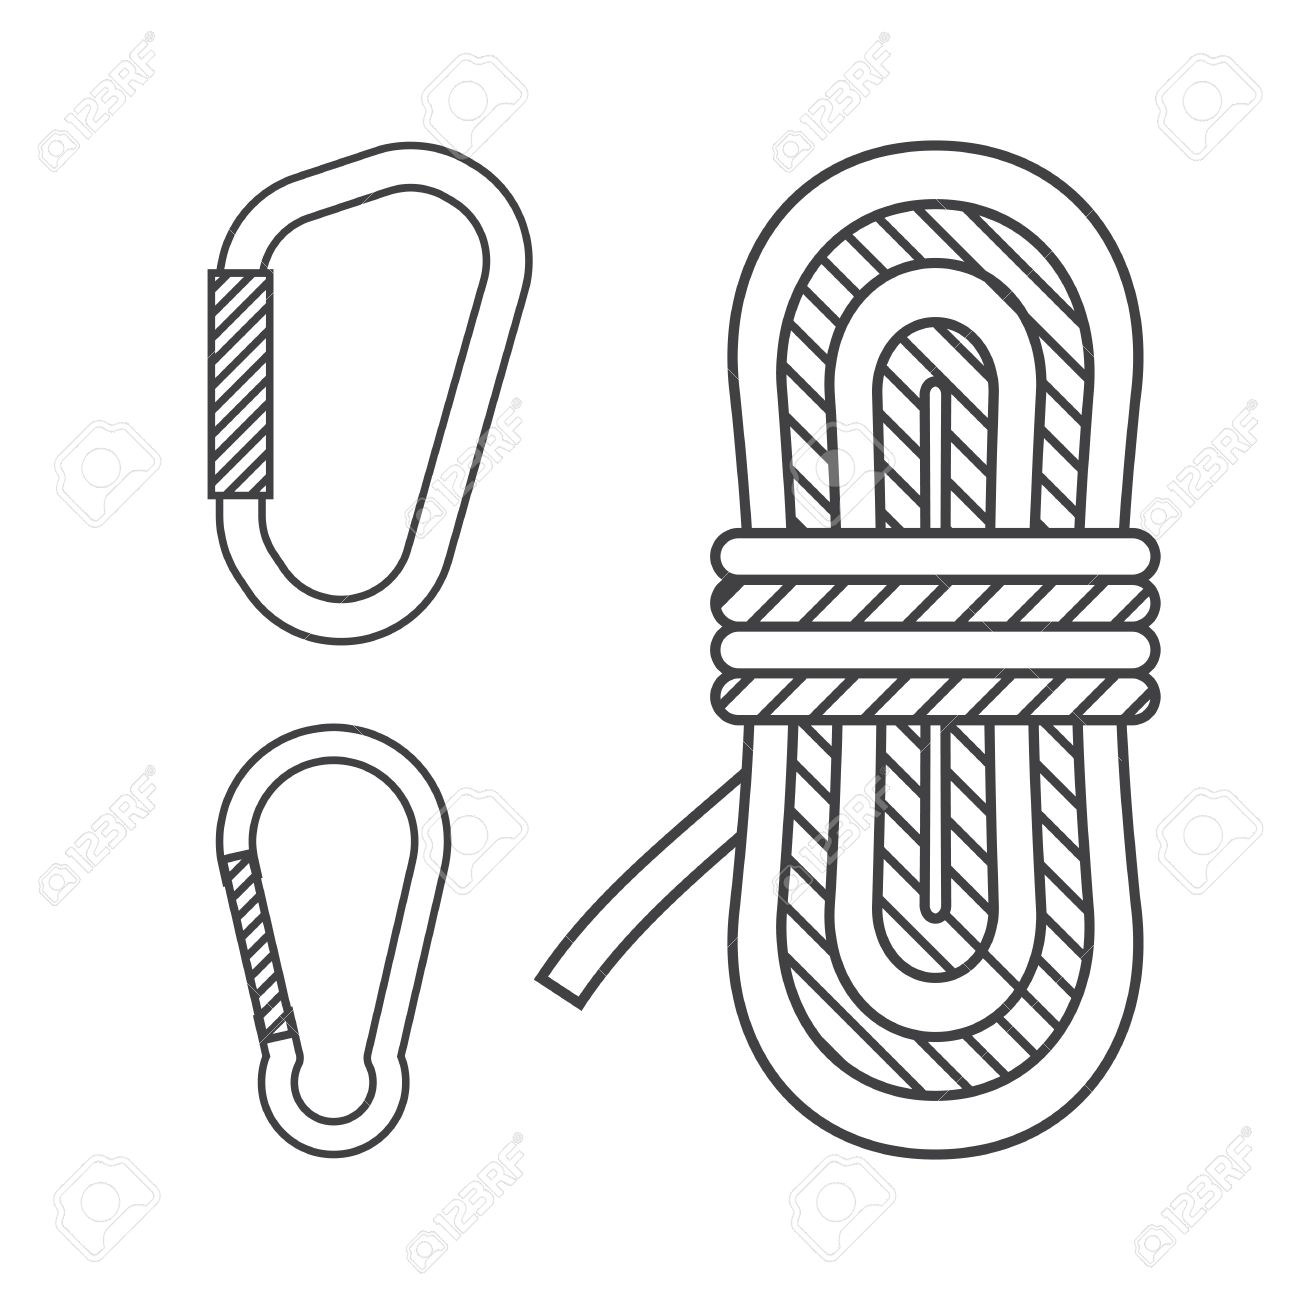 Mountaineering Vector Outline Icons Climbing Rope And Carabiners Royalty Free Cliparts Vectors And Stock Illustration Image 57190872